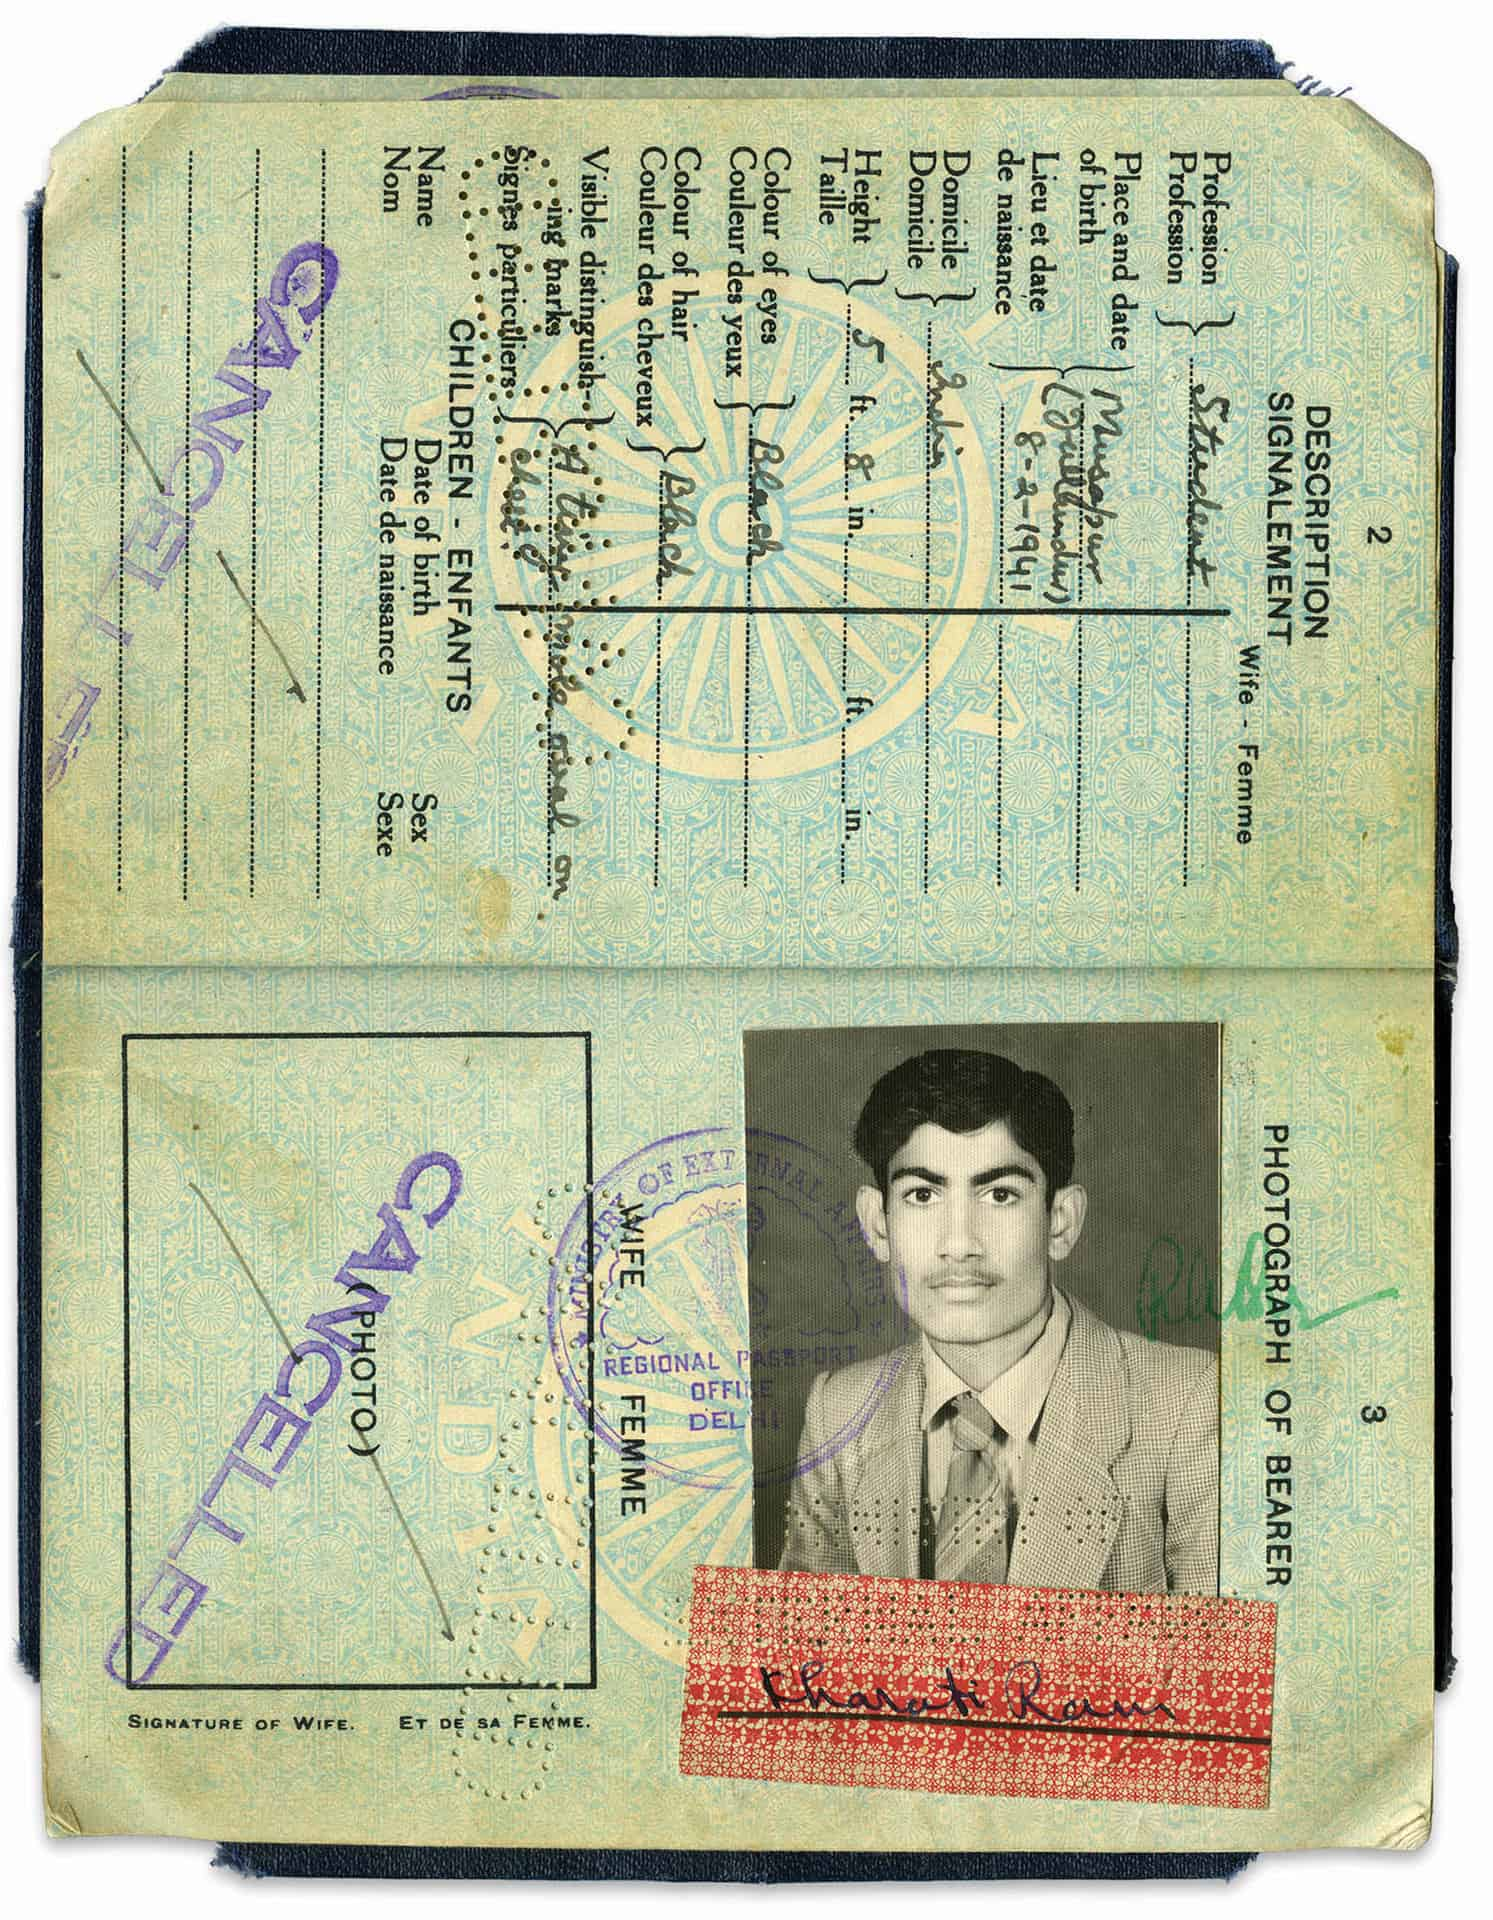 Kharati Verma passport photograph from when he arrived in the UK